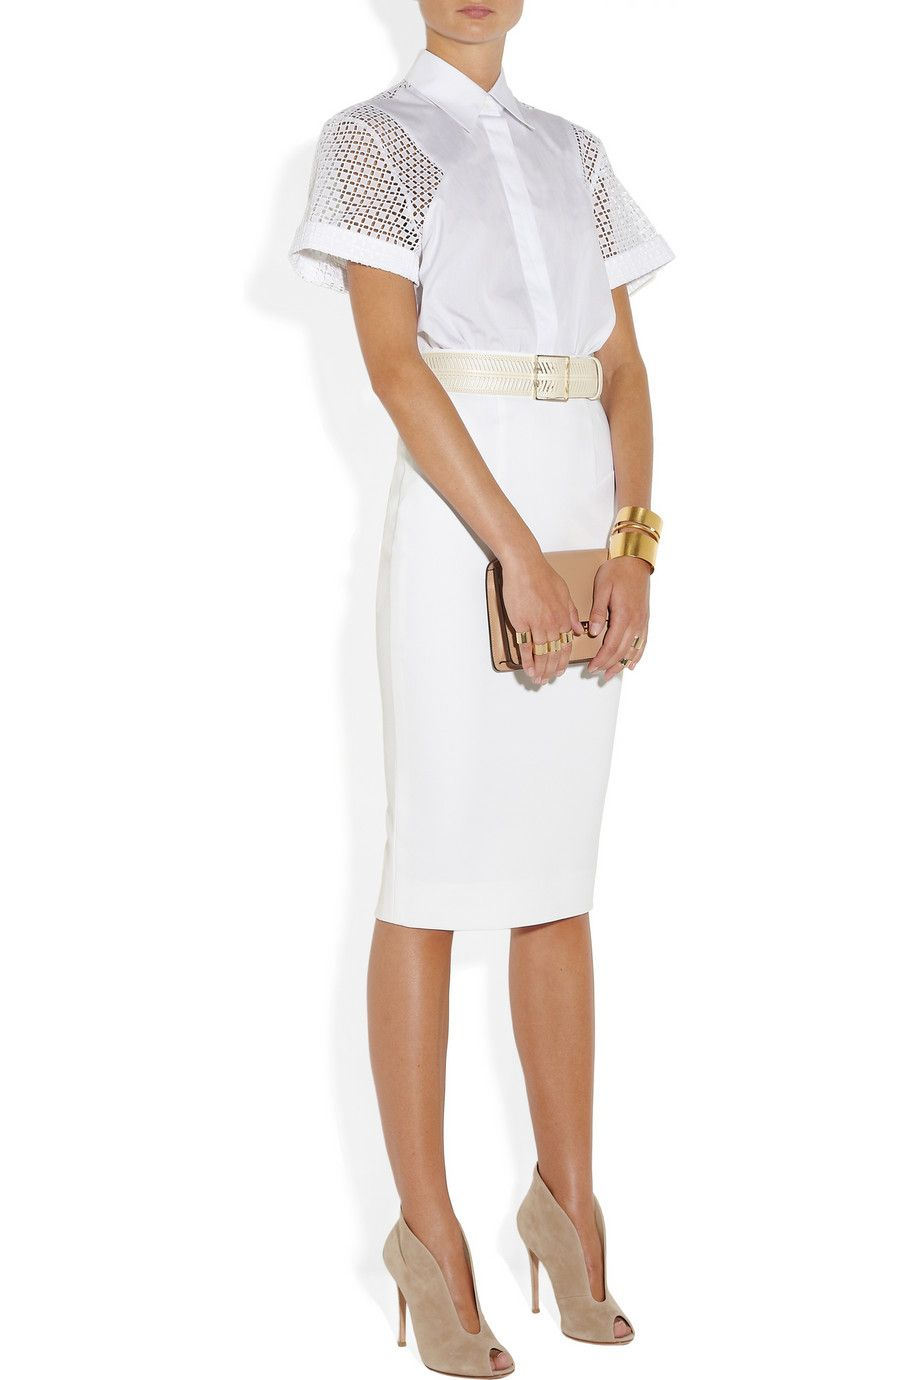 White Belted Lace And Cotton Poplin Dress Victoria Beckham Classic Style Outfits Poplin Dress Fashion [ 1380 x 920 Pixel ]